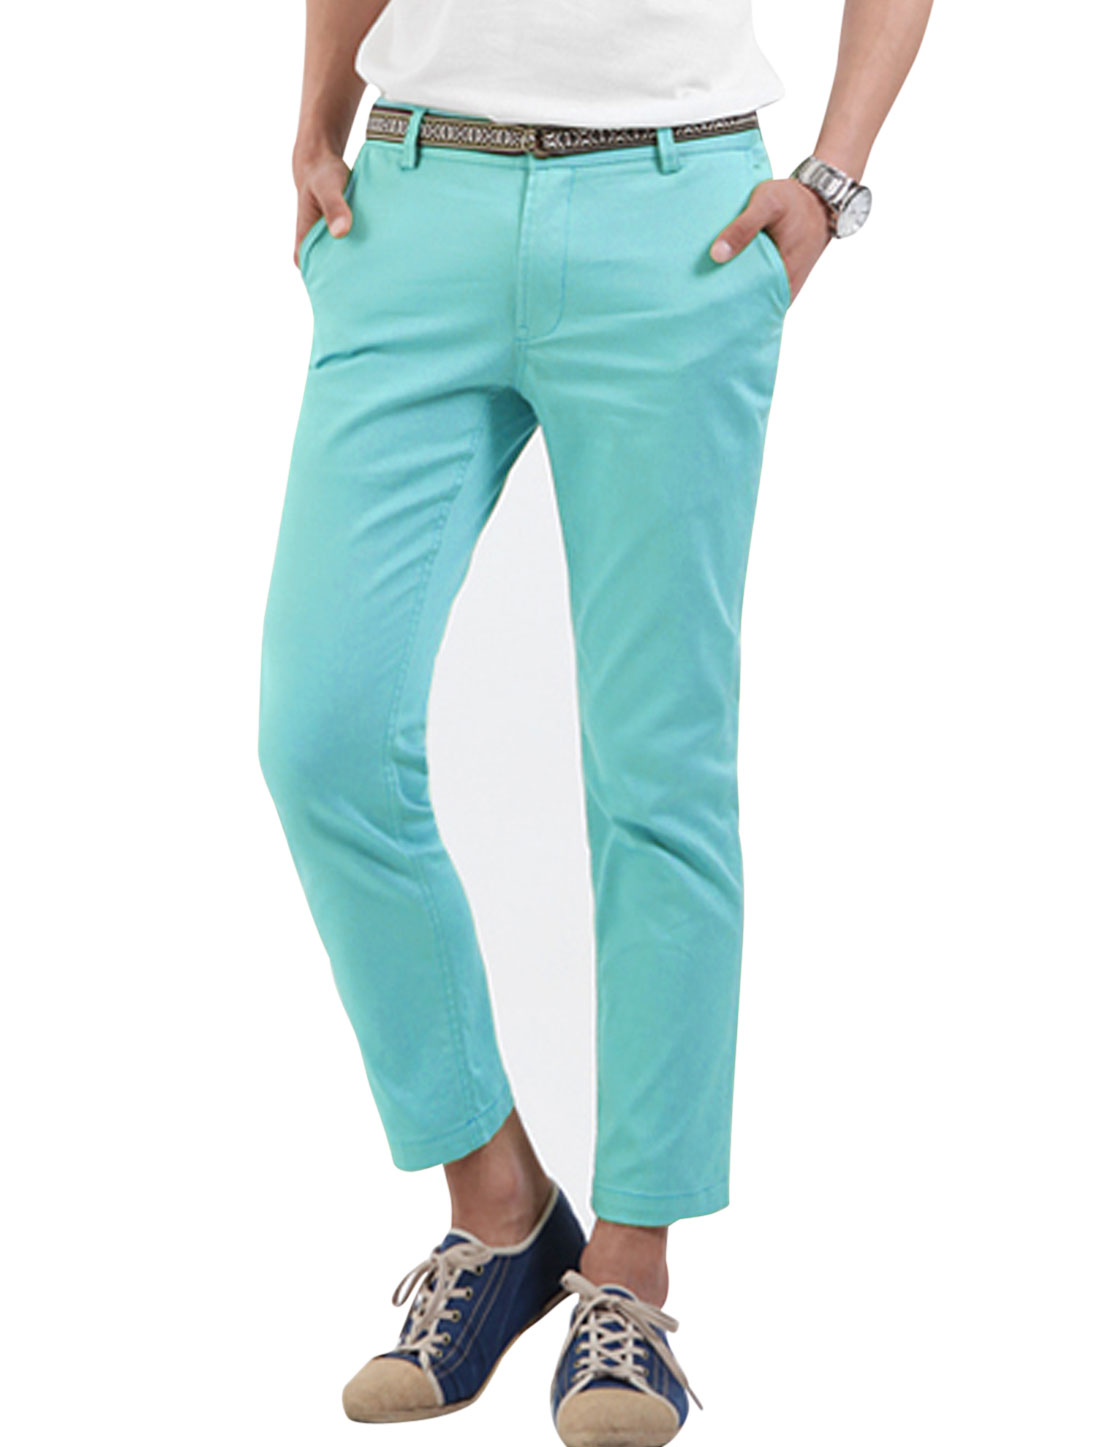 Men Zipper Fly Stripes Line Inner Cozy Fit Cropped Pants Light Blue W30